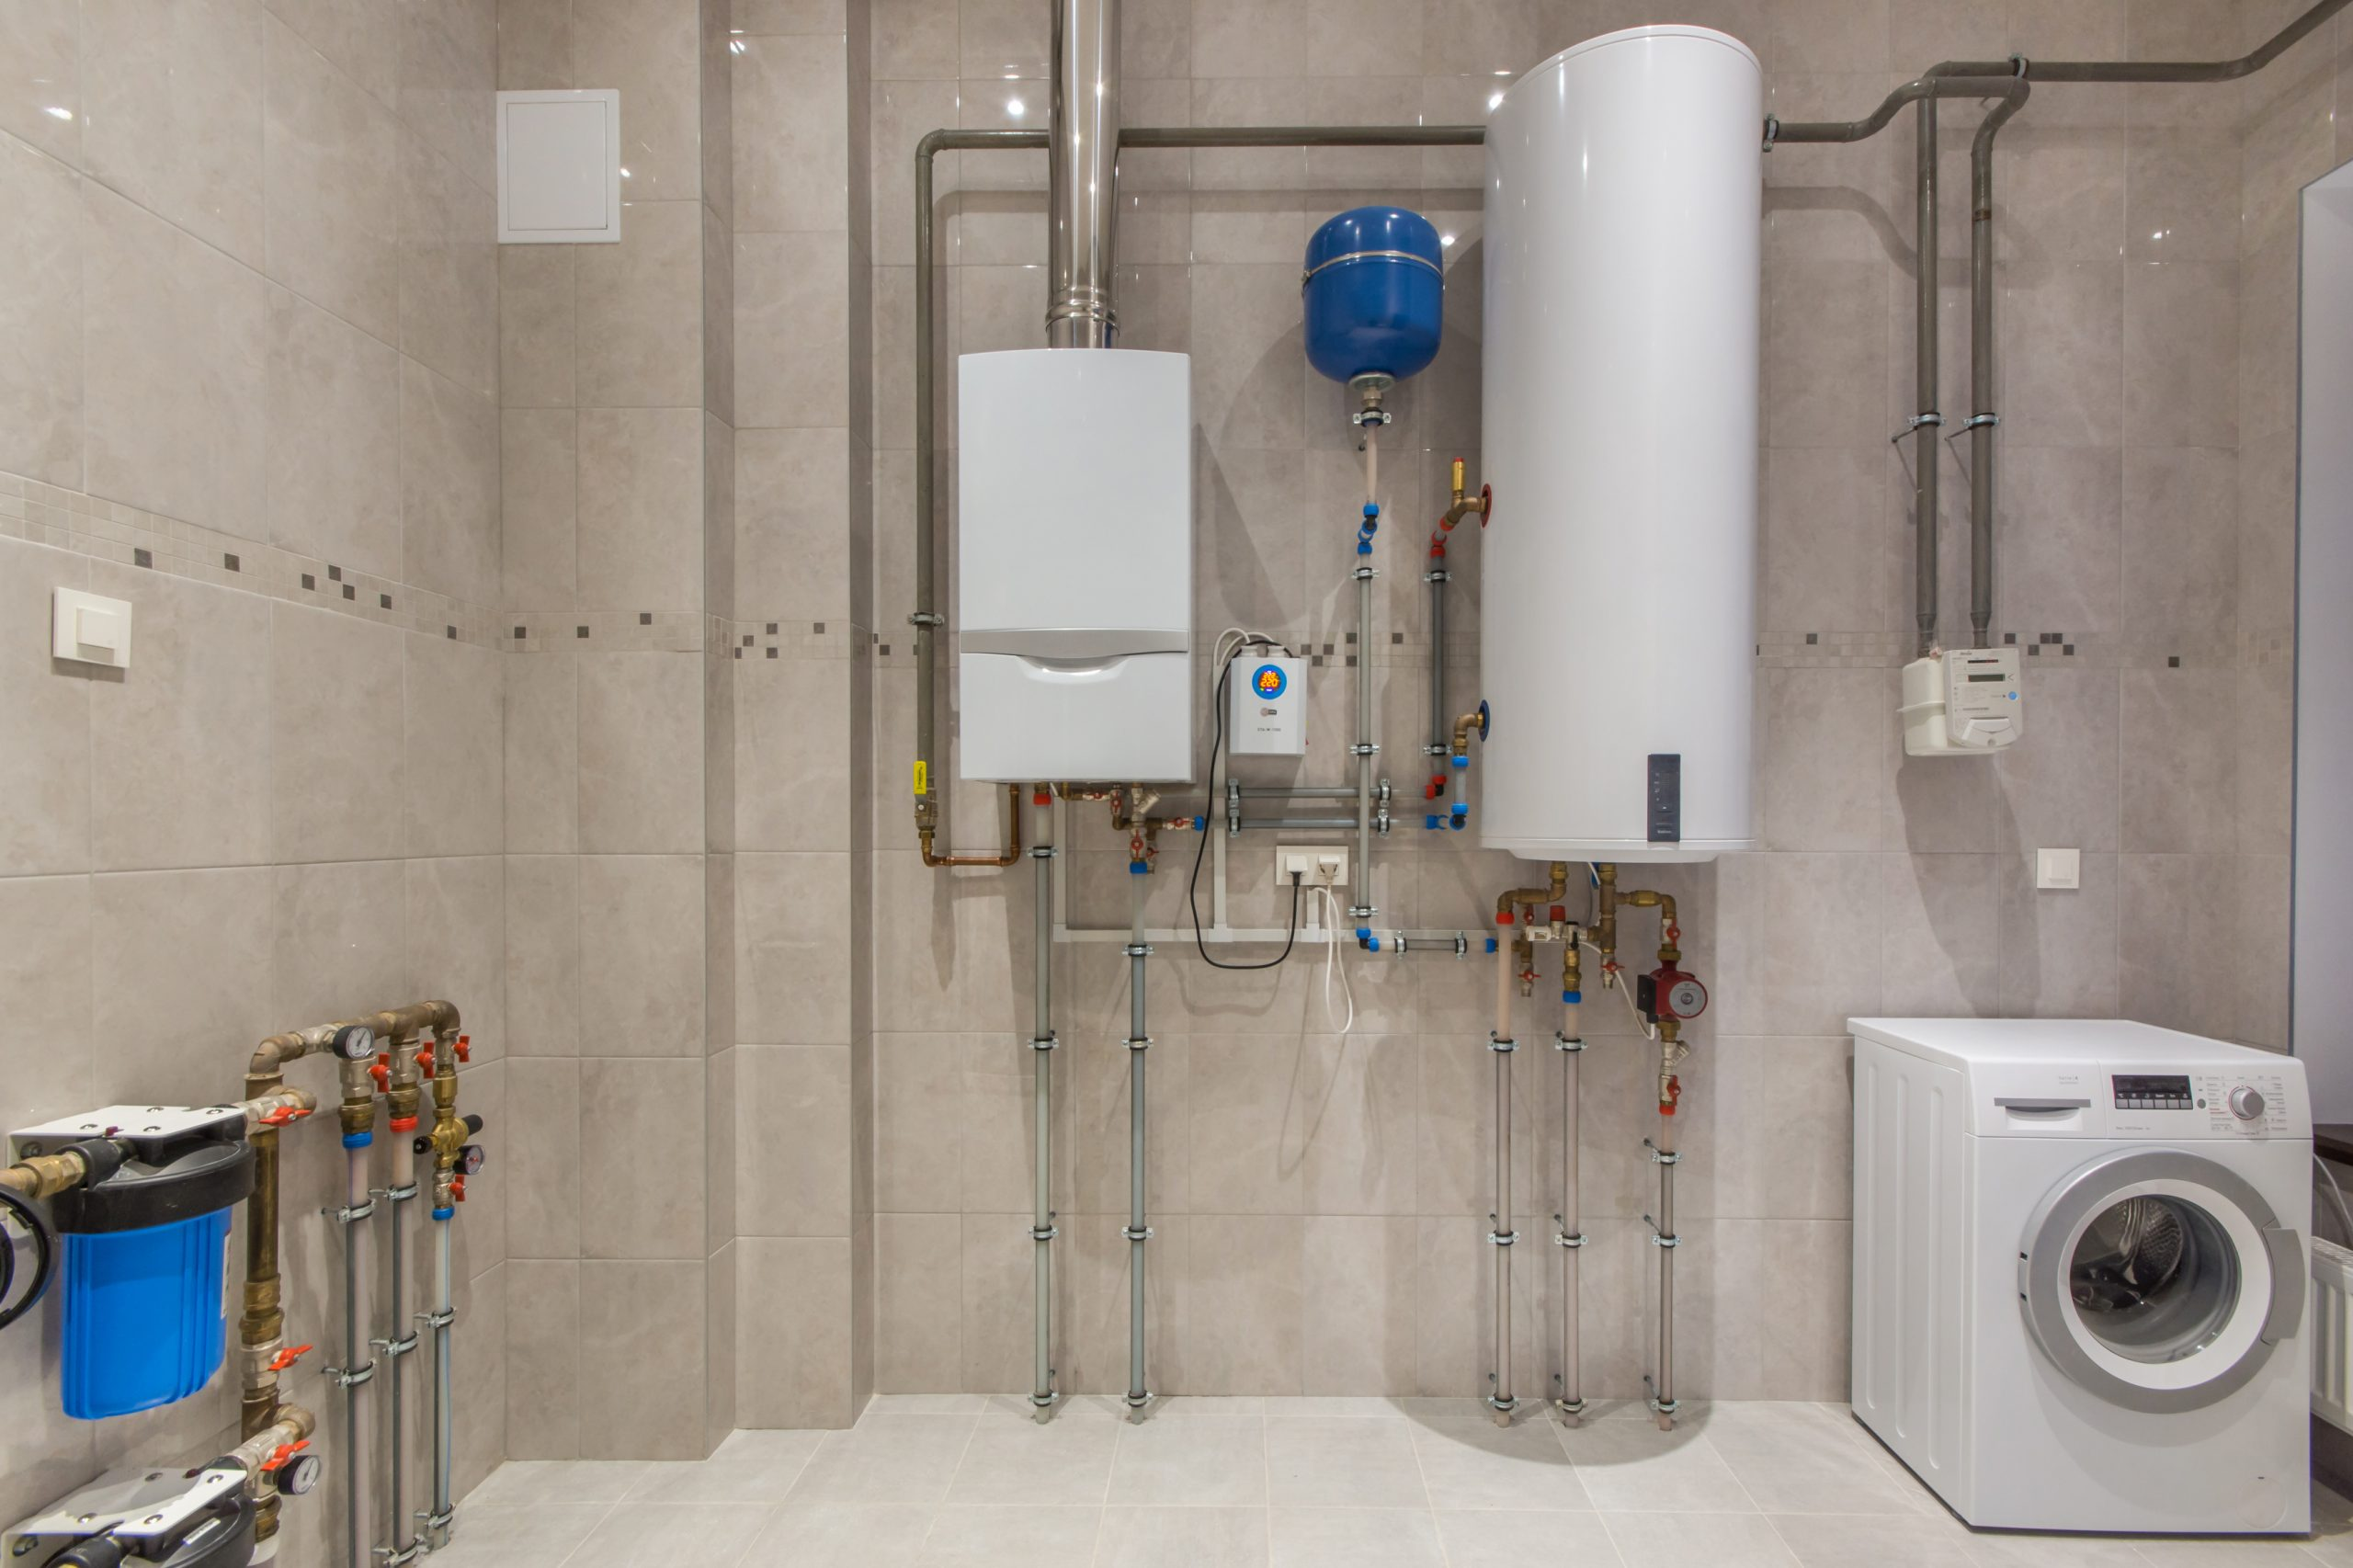 st louis boiler repair service